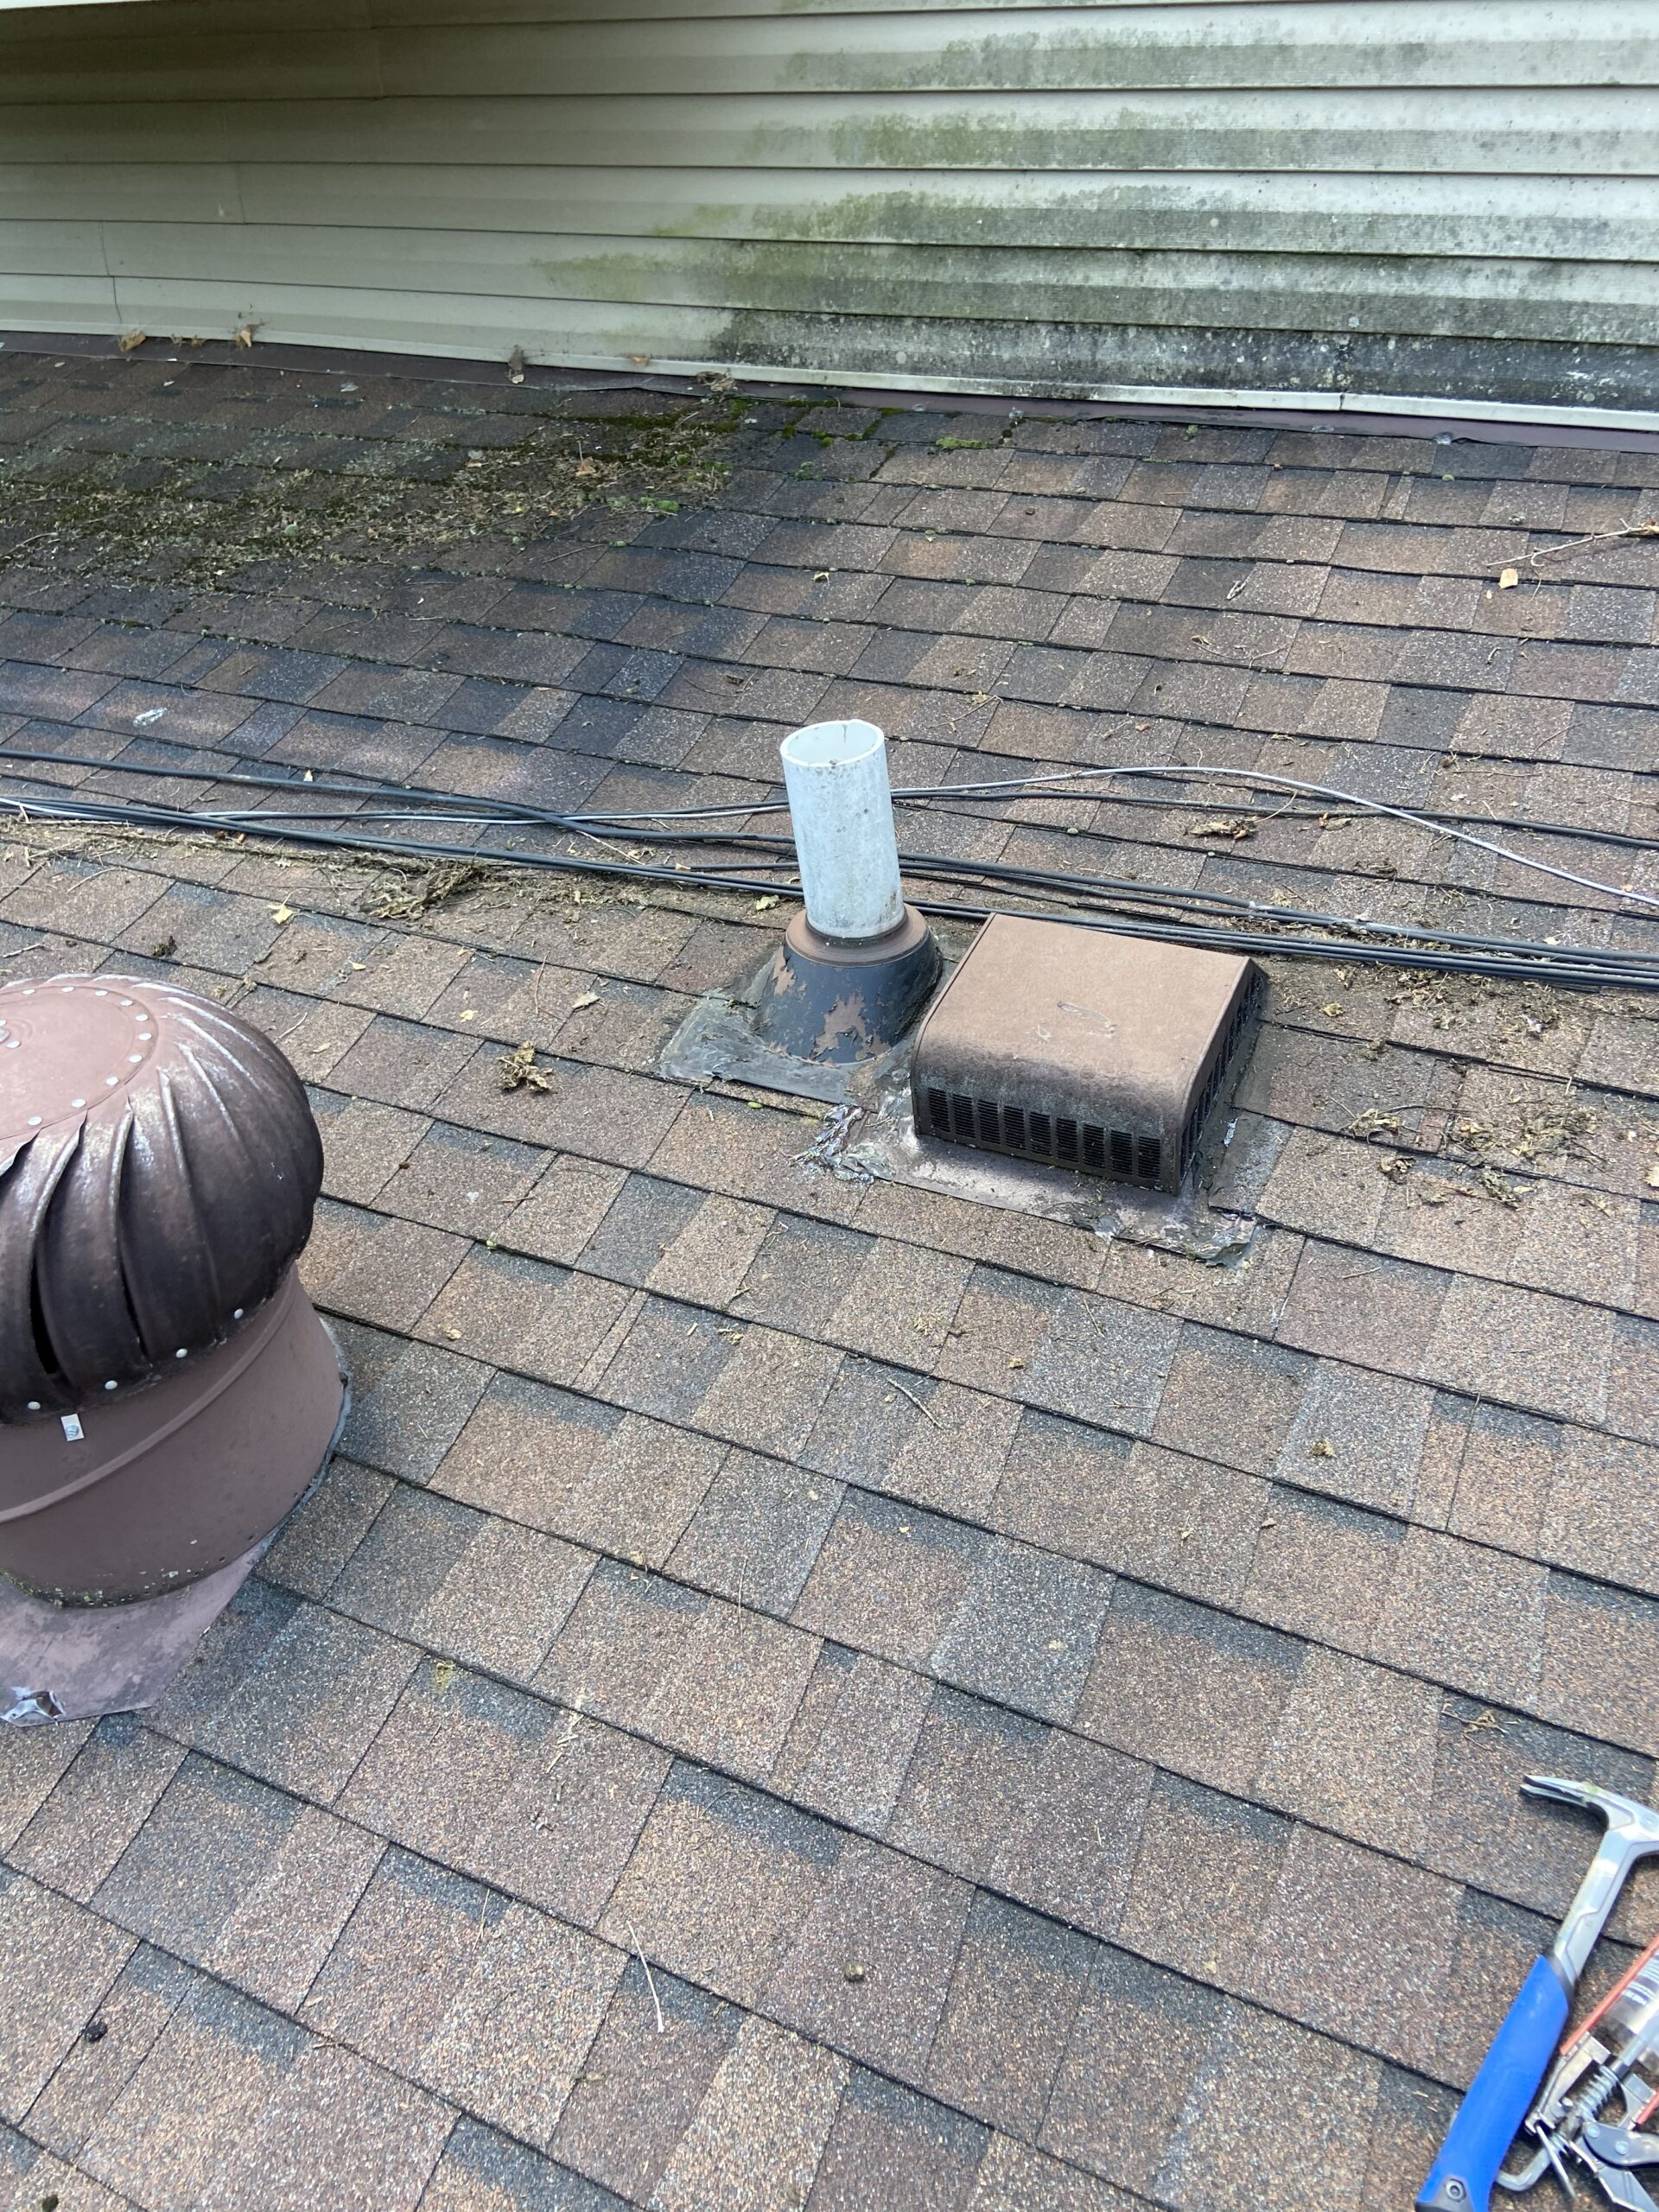 This is a picture of an area of a roof that is leaking there are bron shingles and pipes and vents coming through the roof